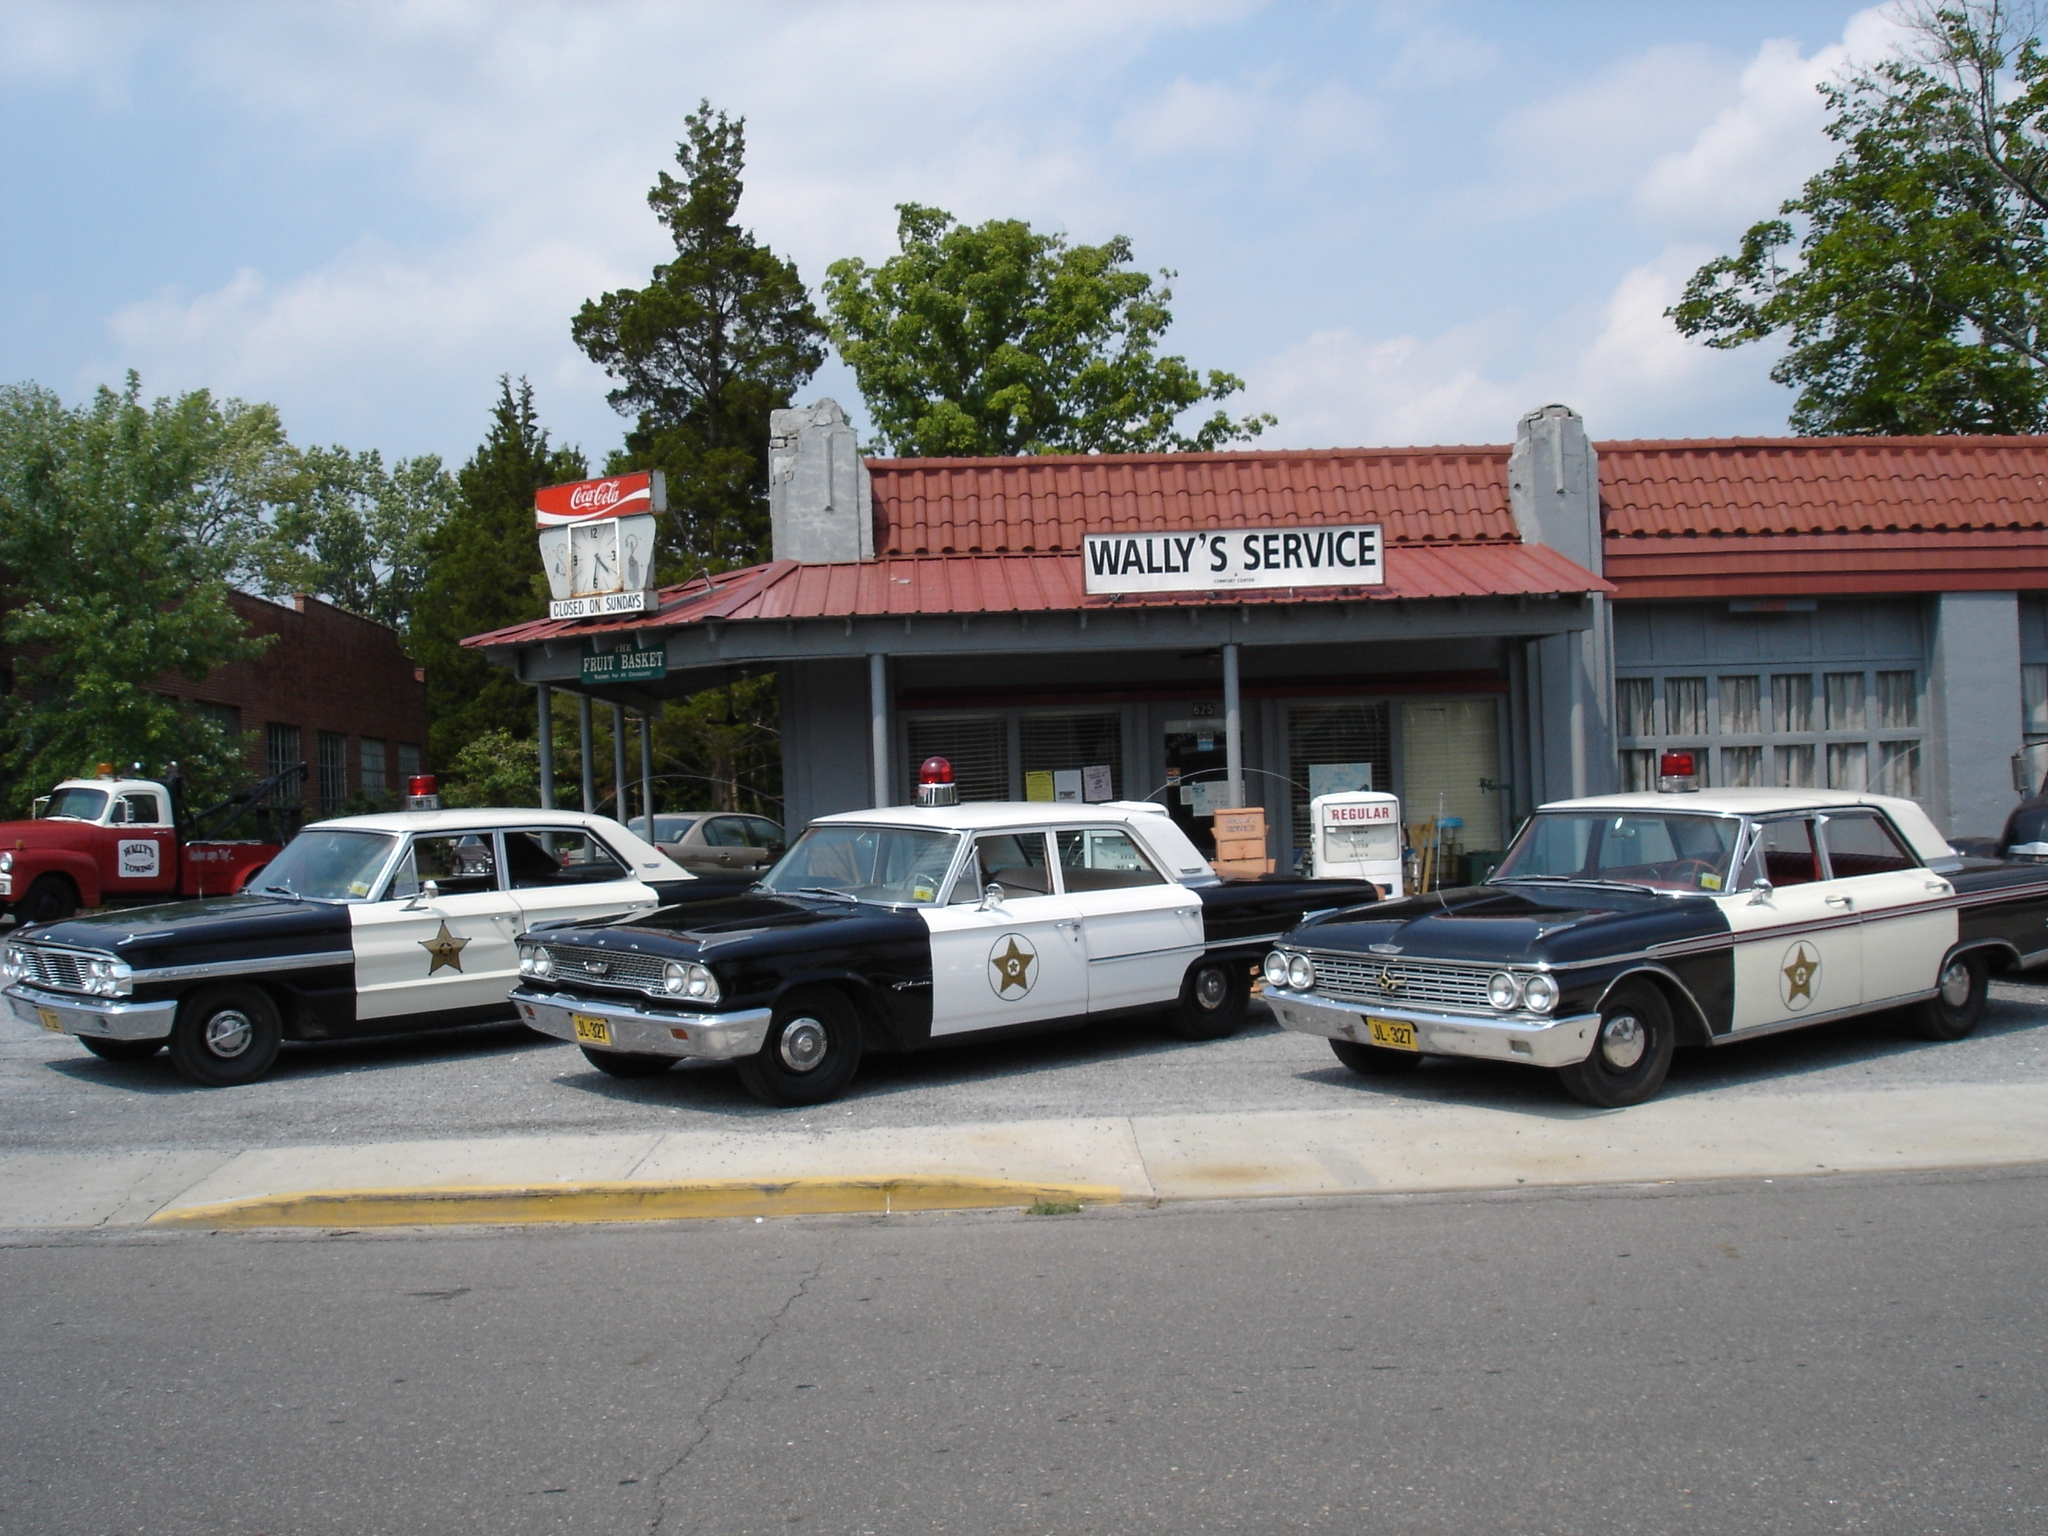 Mayberr Squad Cars at Wallys Service Station, Surry County Yadkin Valley NC